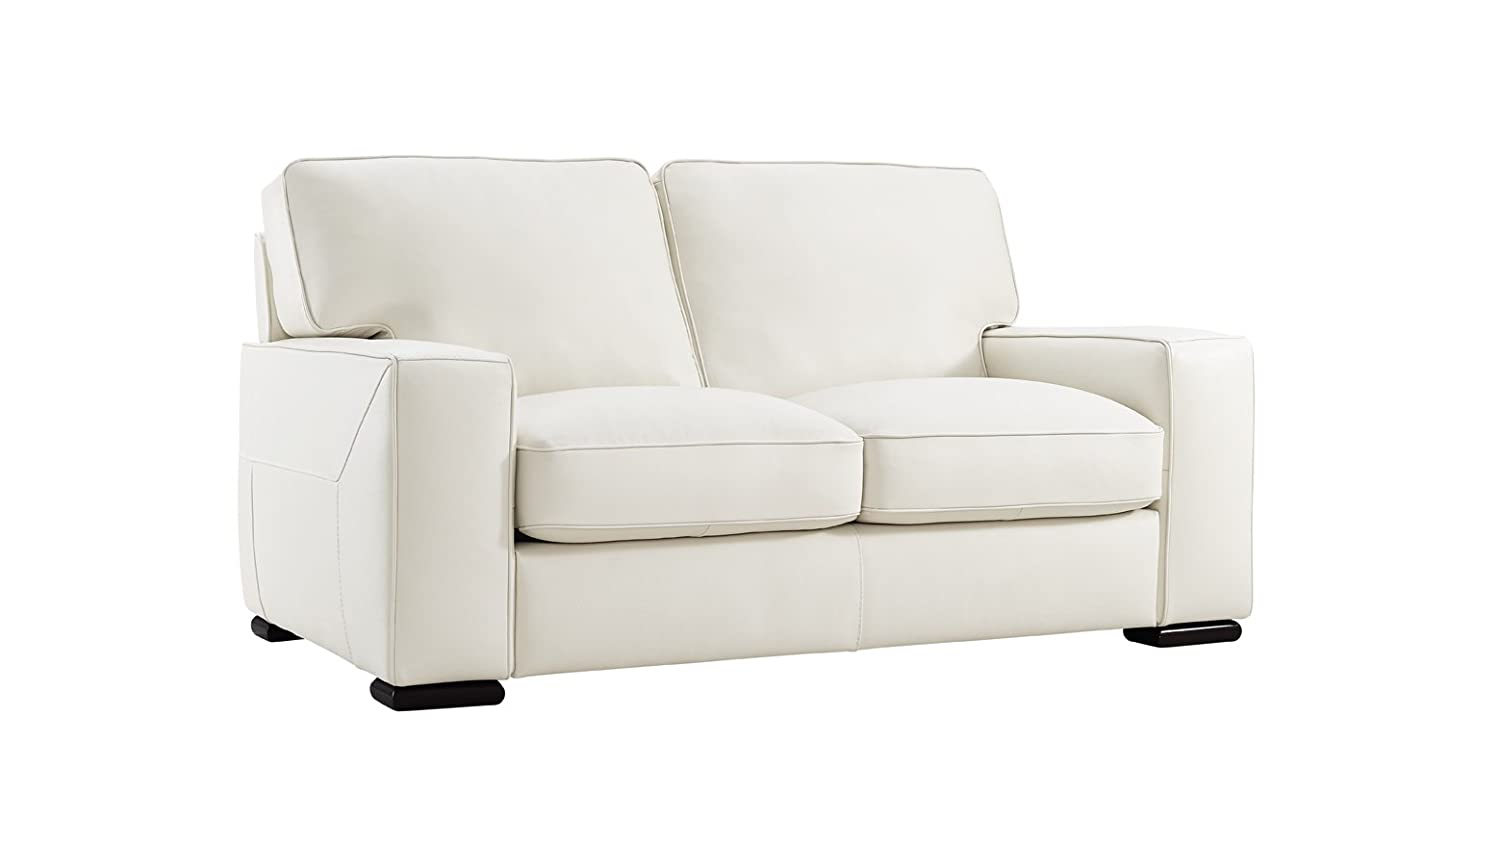 Natuzzi Editions Matera Cream Leather Stationary Loveseat